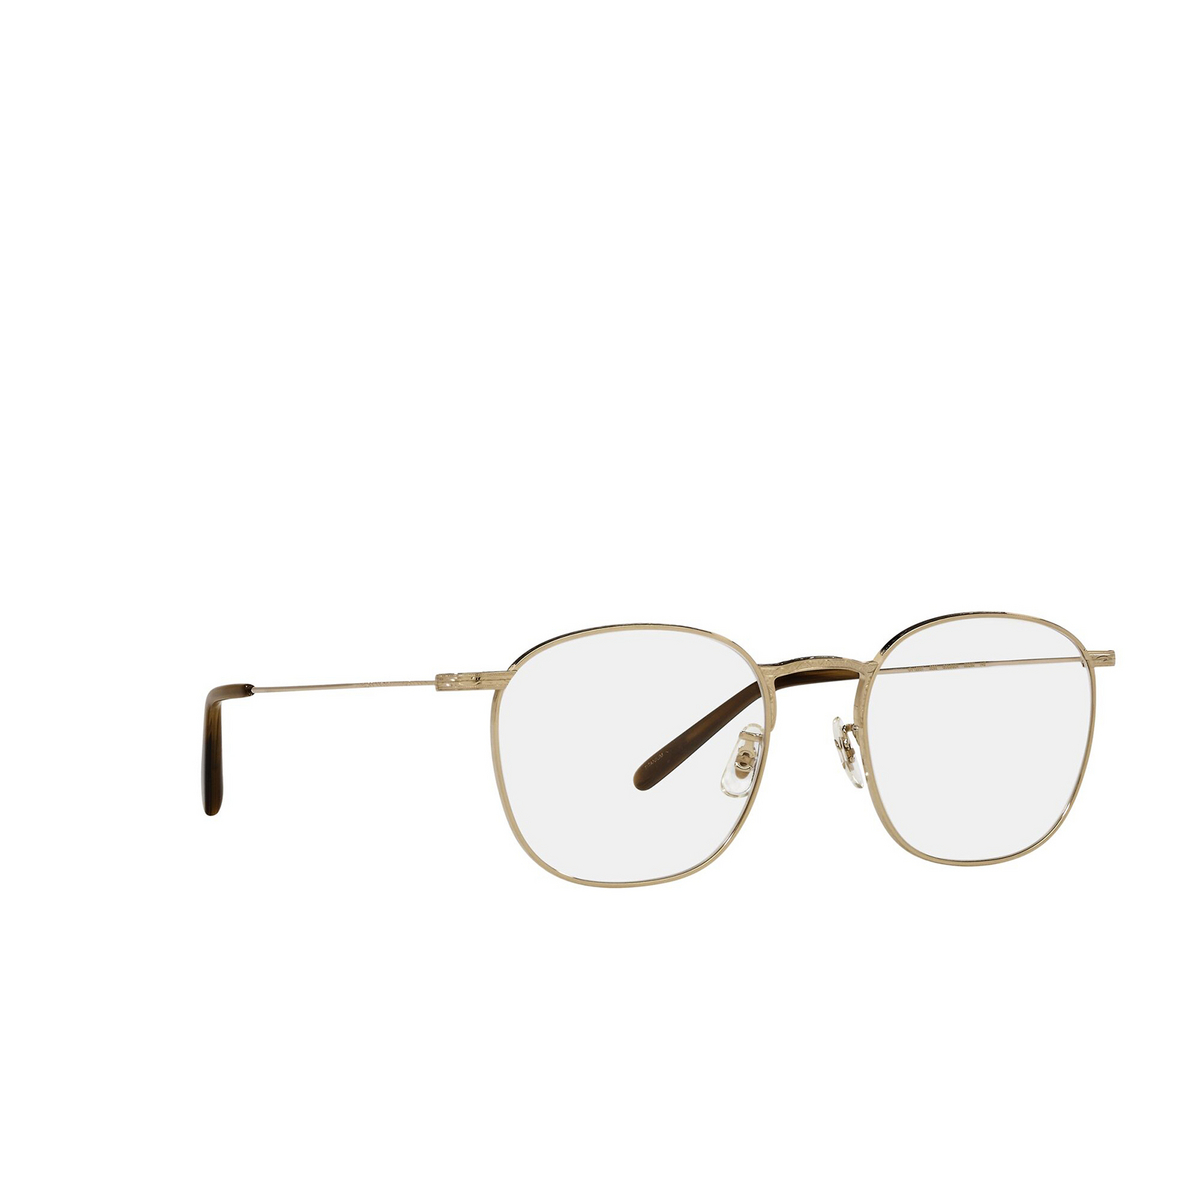 Oliver Peoples® Square Eyeglasses: Goldsen OV1285T color White Gold 5292 - three-quarters view.